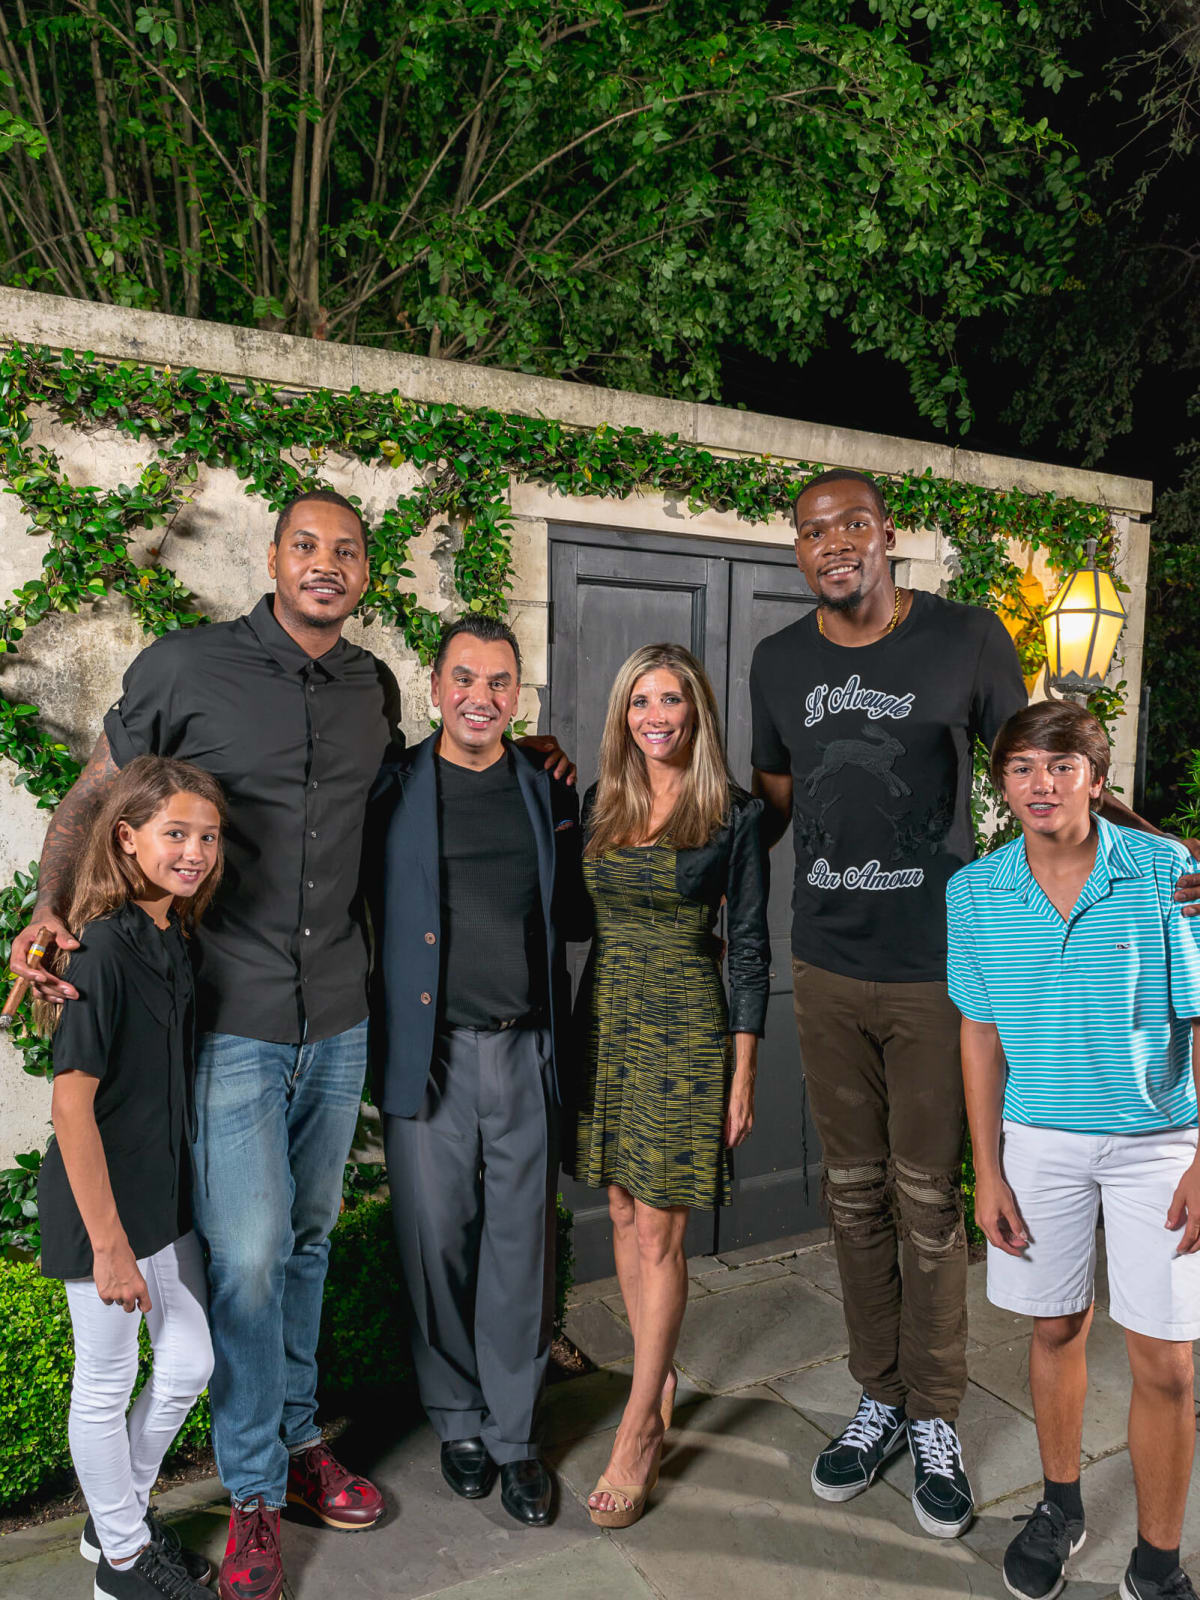 Olympic Basketball party 7/16, Mia Devinder, Carmelo Anthony, Devinder Bhatia, Gina Bhatia, Kevin Durant, Drake Bhatia,